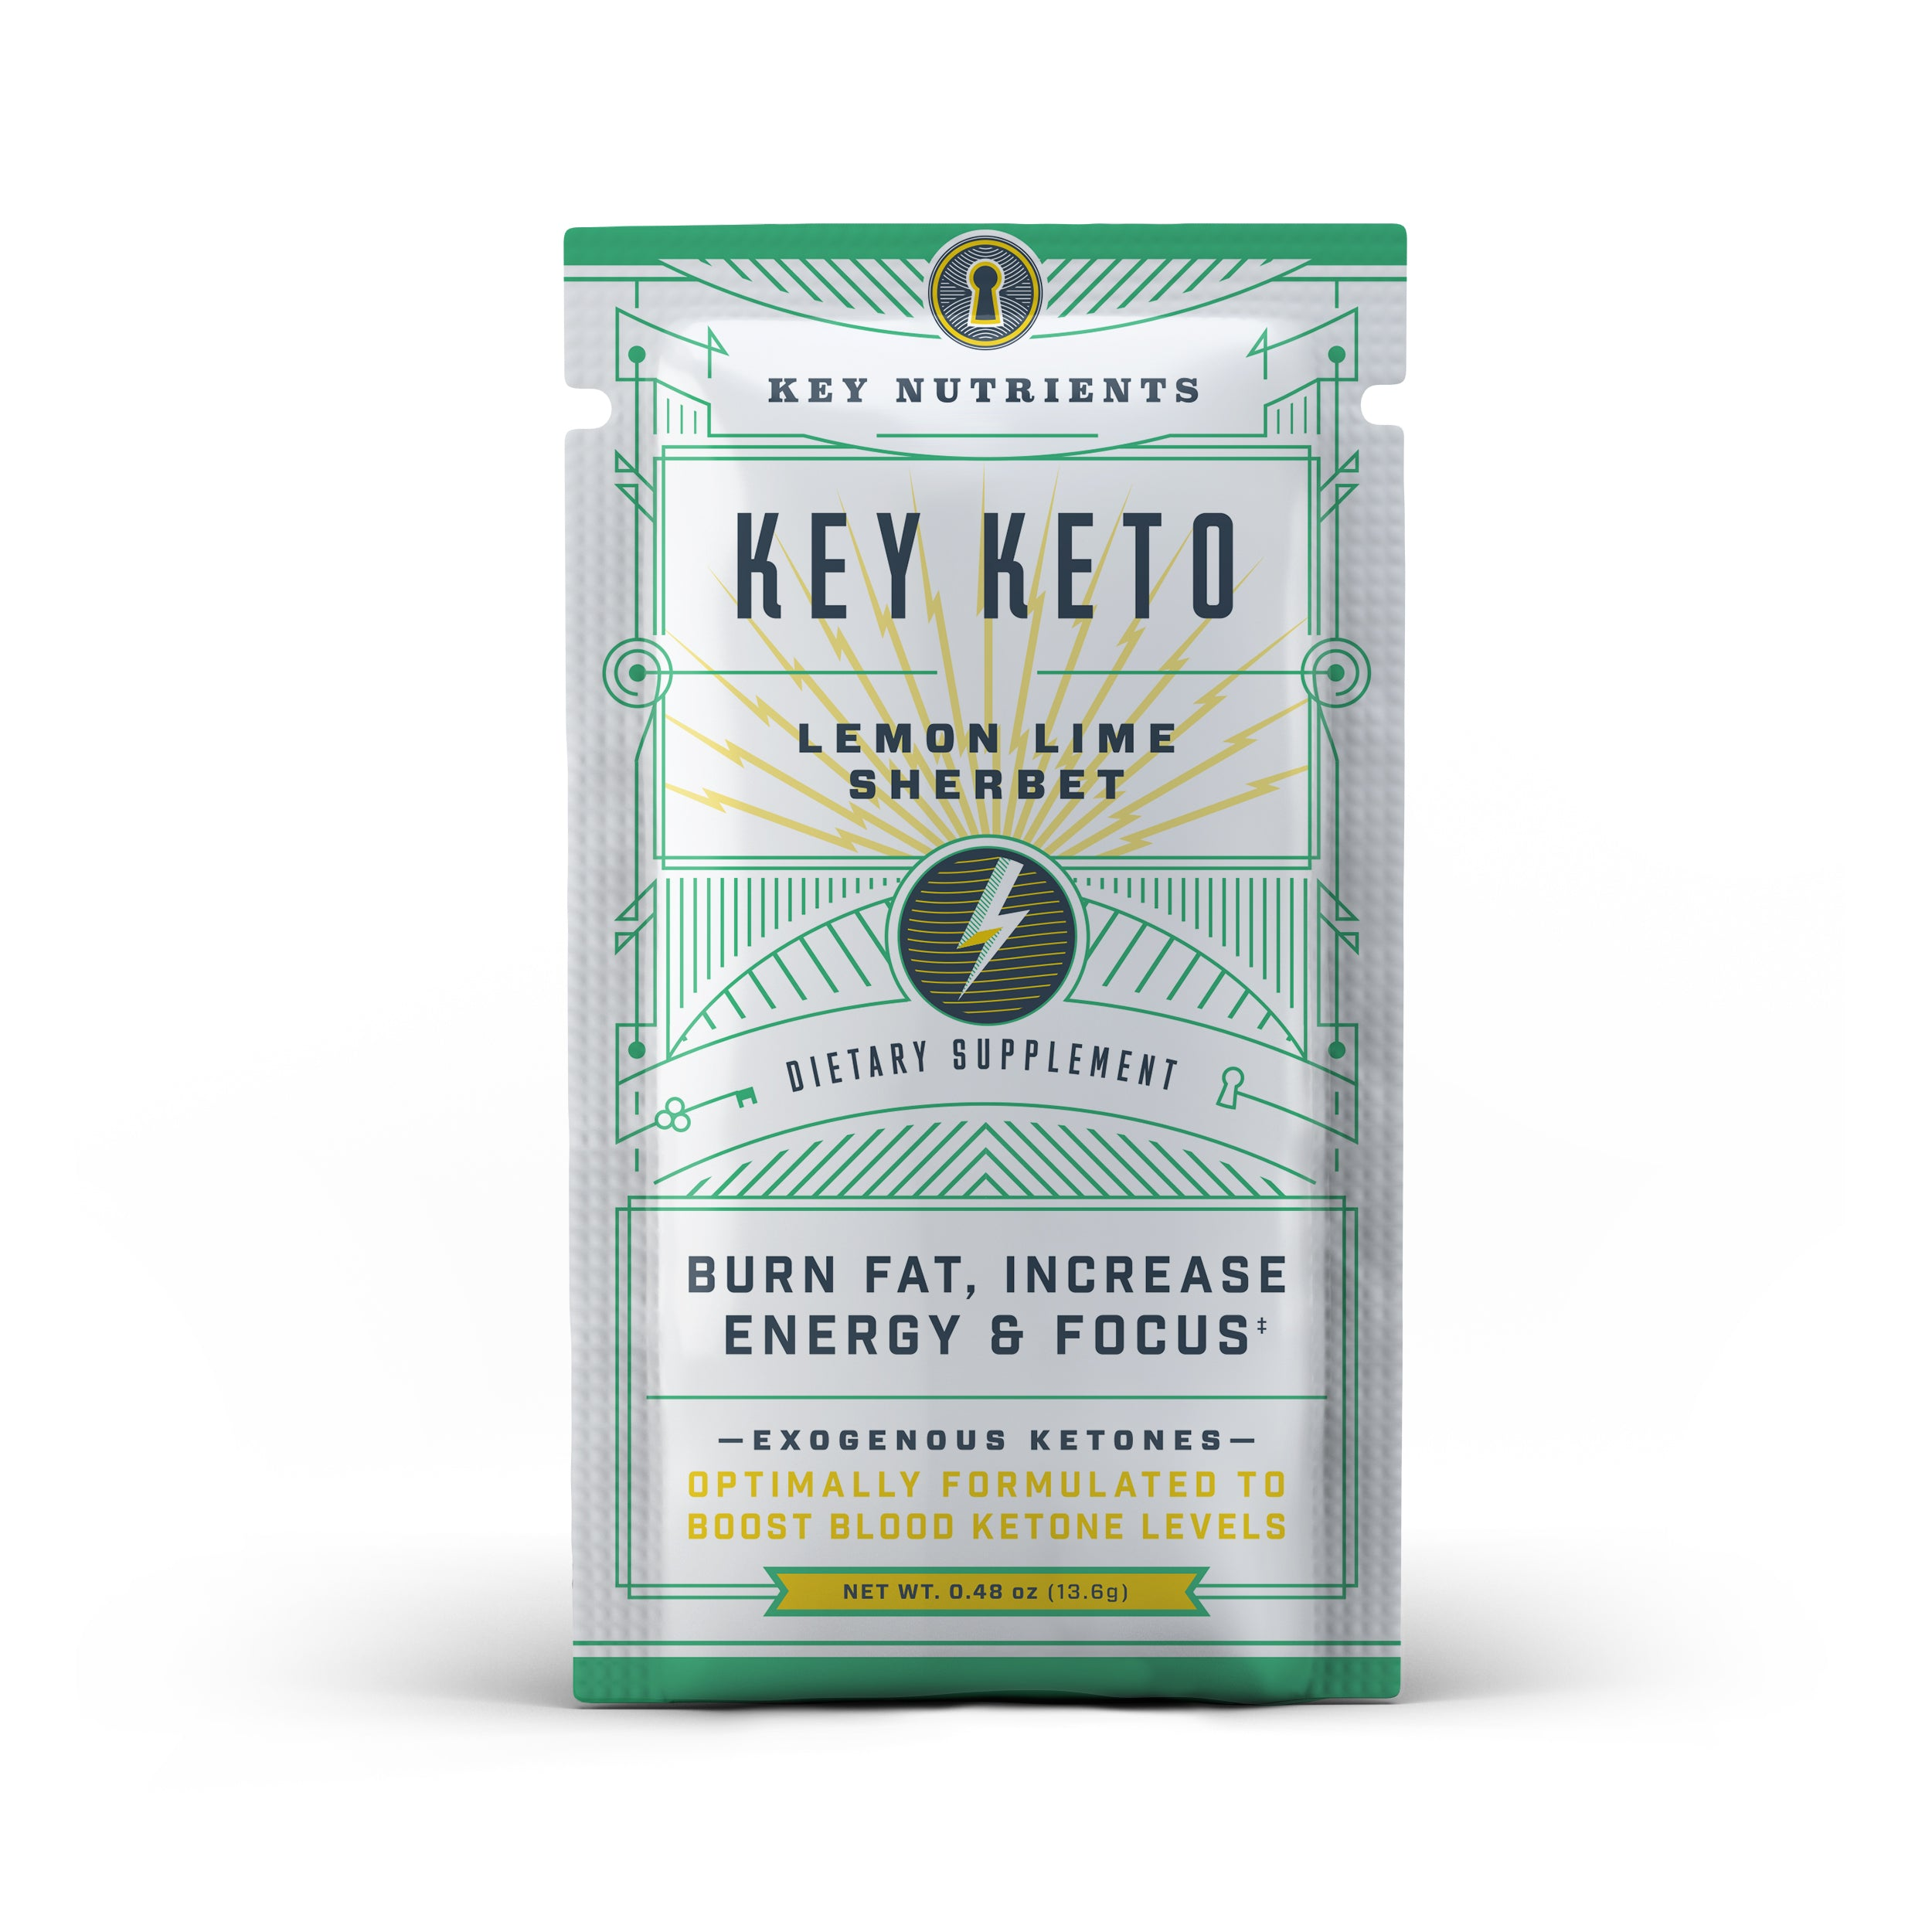 Key Keto - Lemon Lime Sherbet Travel Pouch